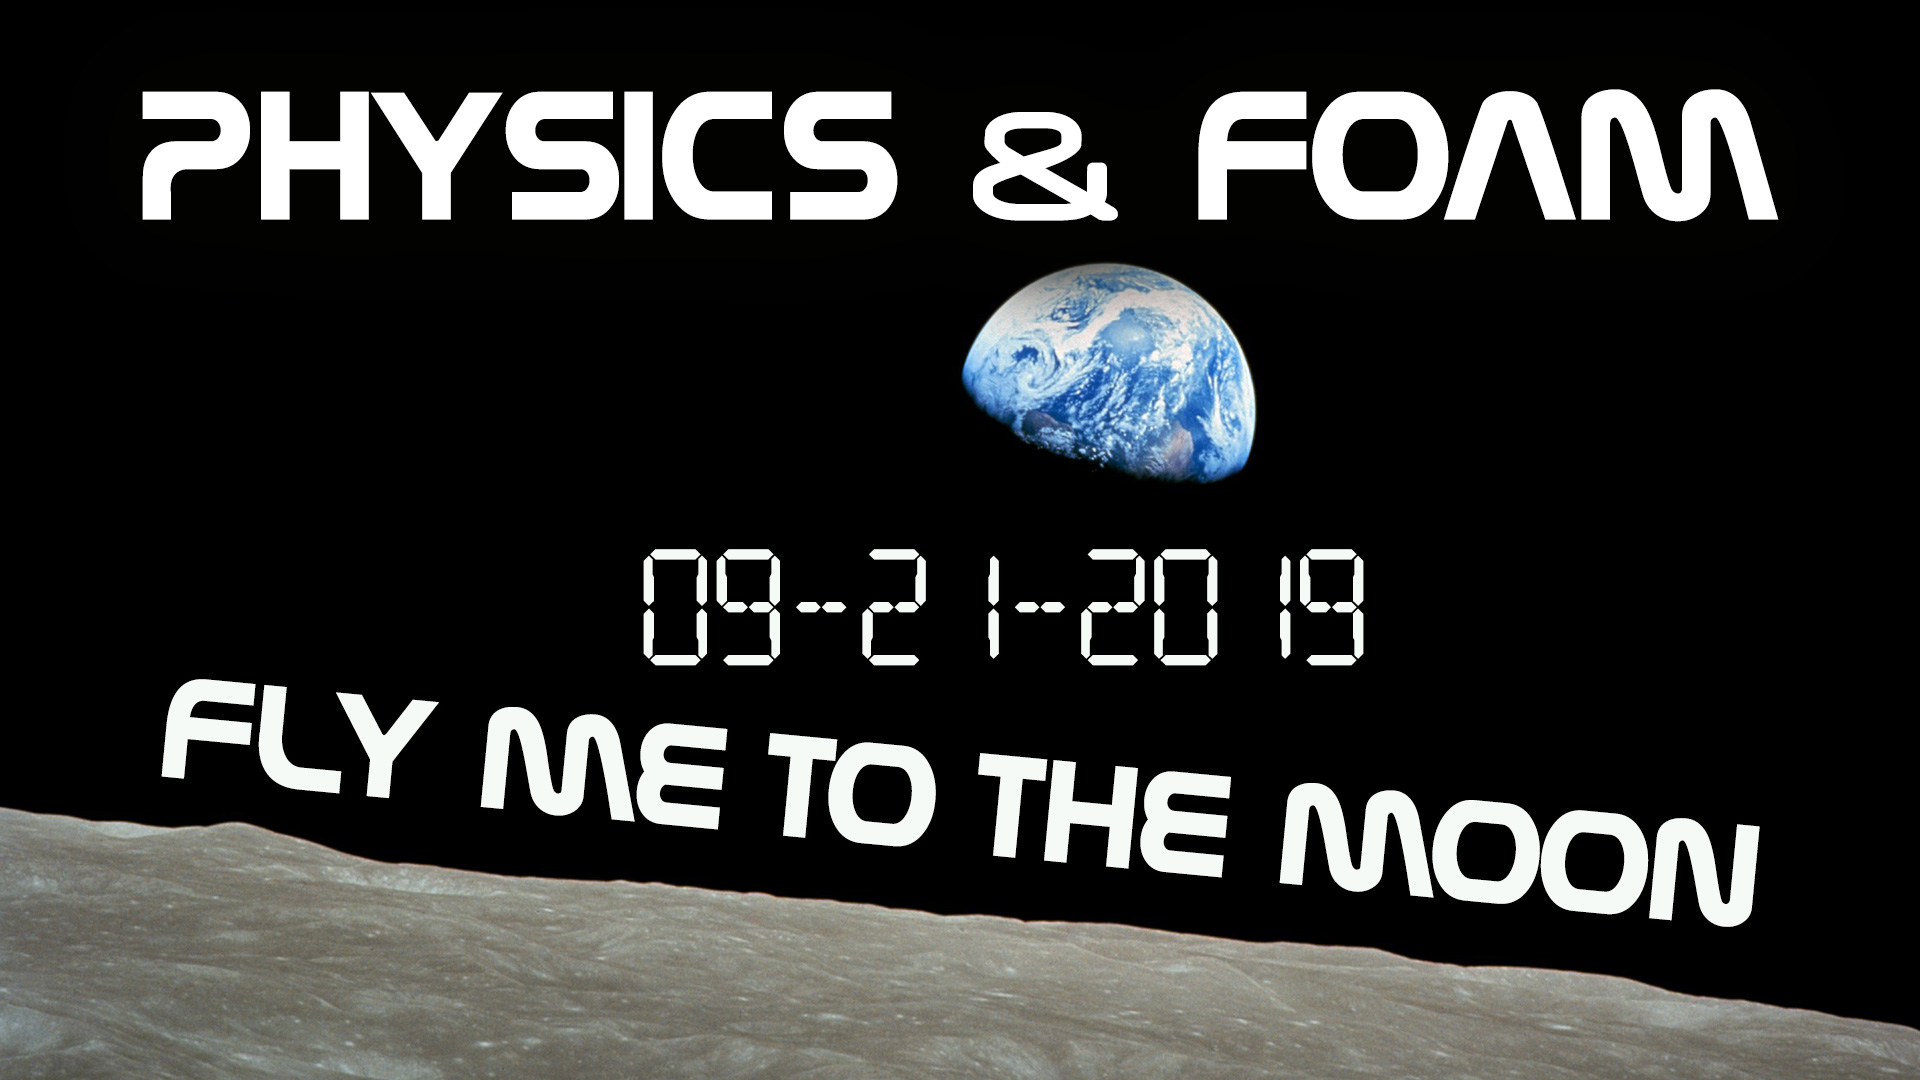 PHYSICS-MOON-EVENT.jpg